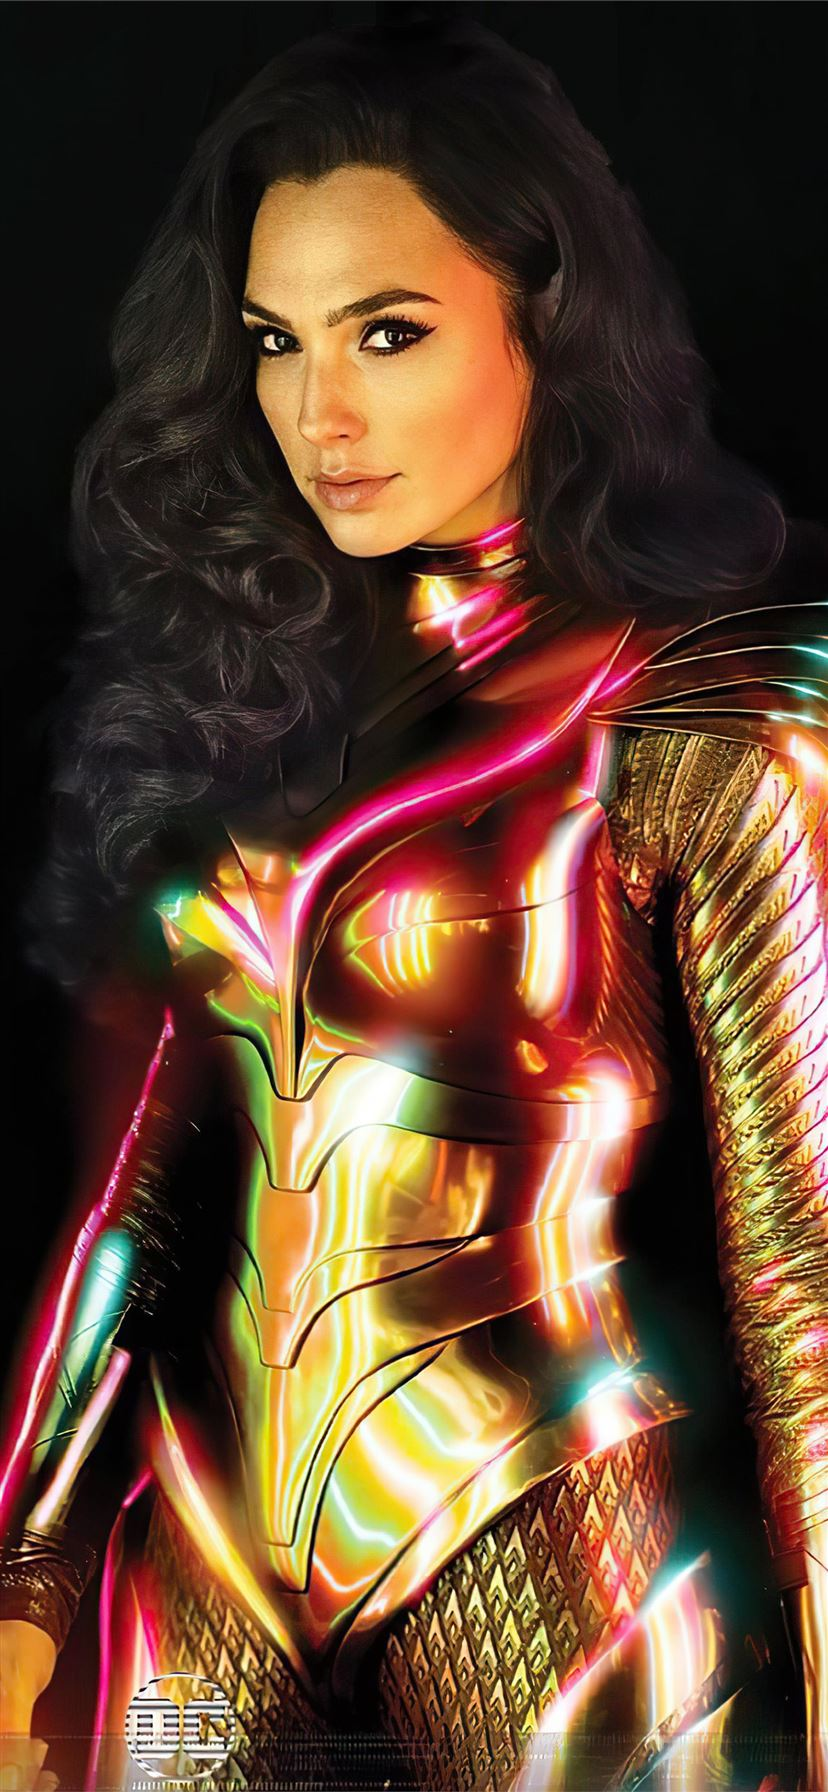 wonder woman 1984 movie 2021 iPhone 11 wallpaper